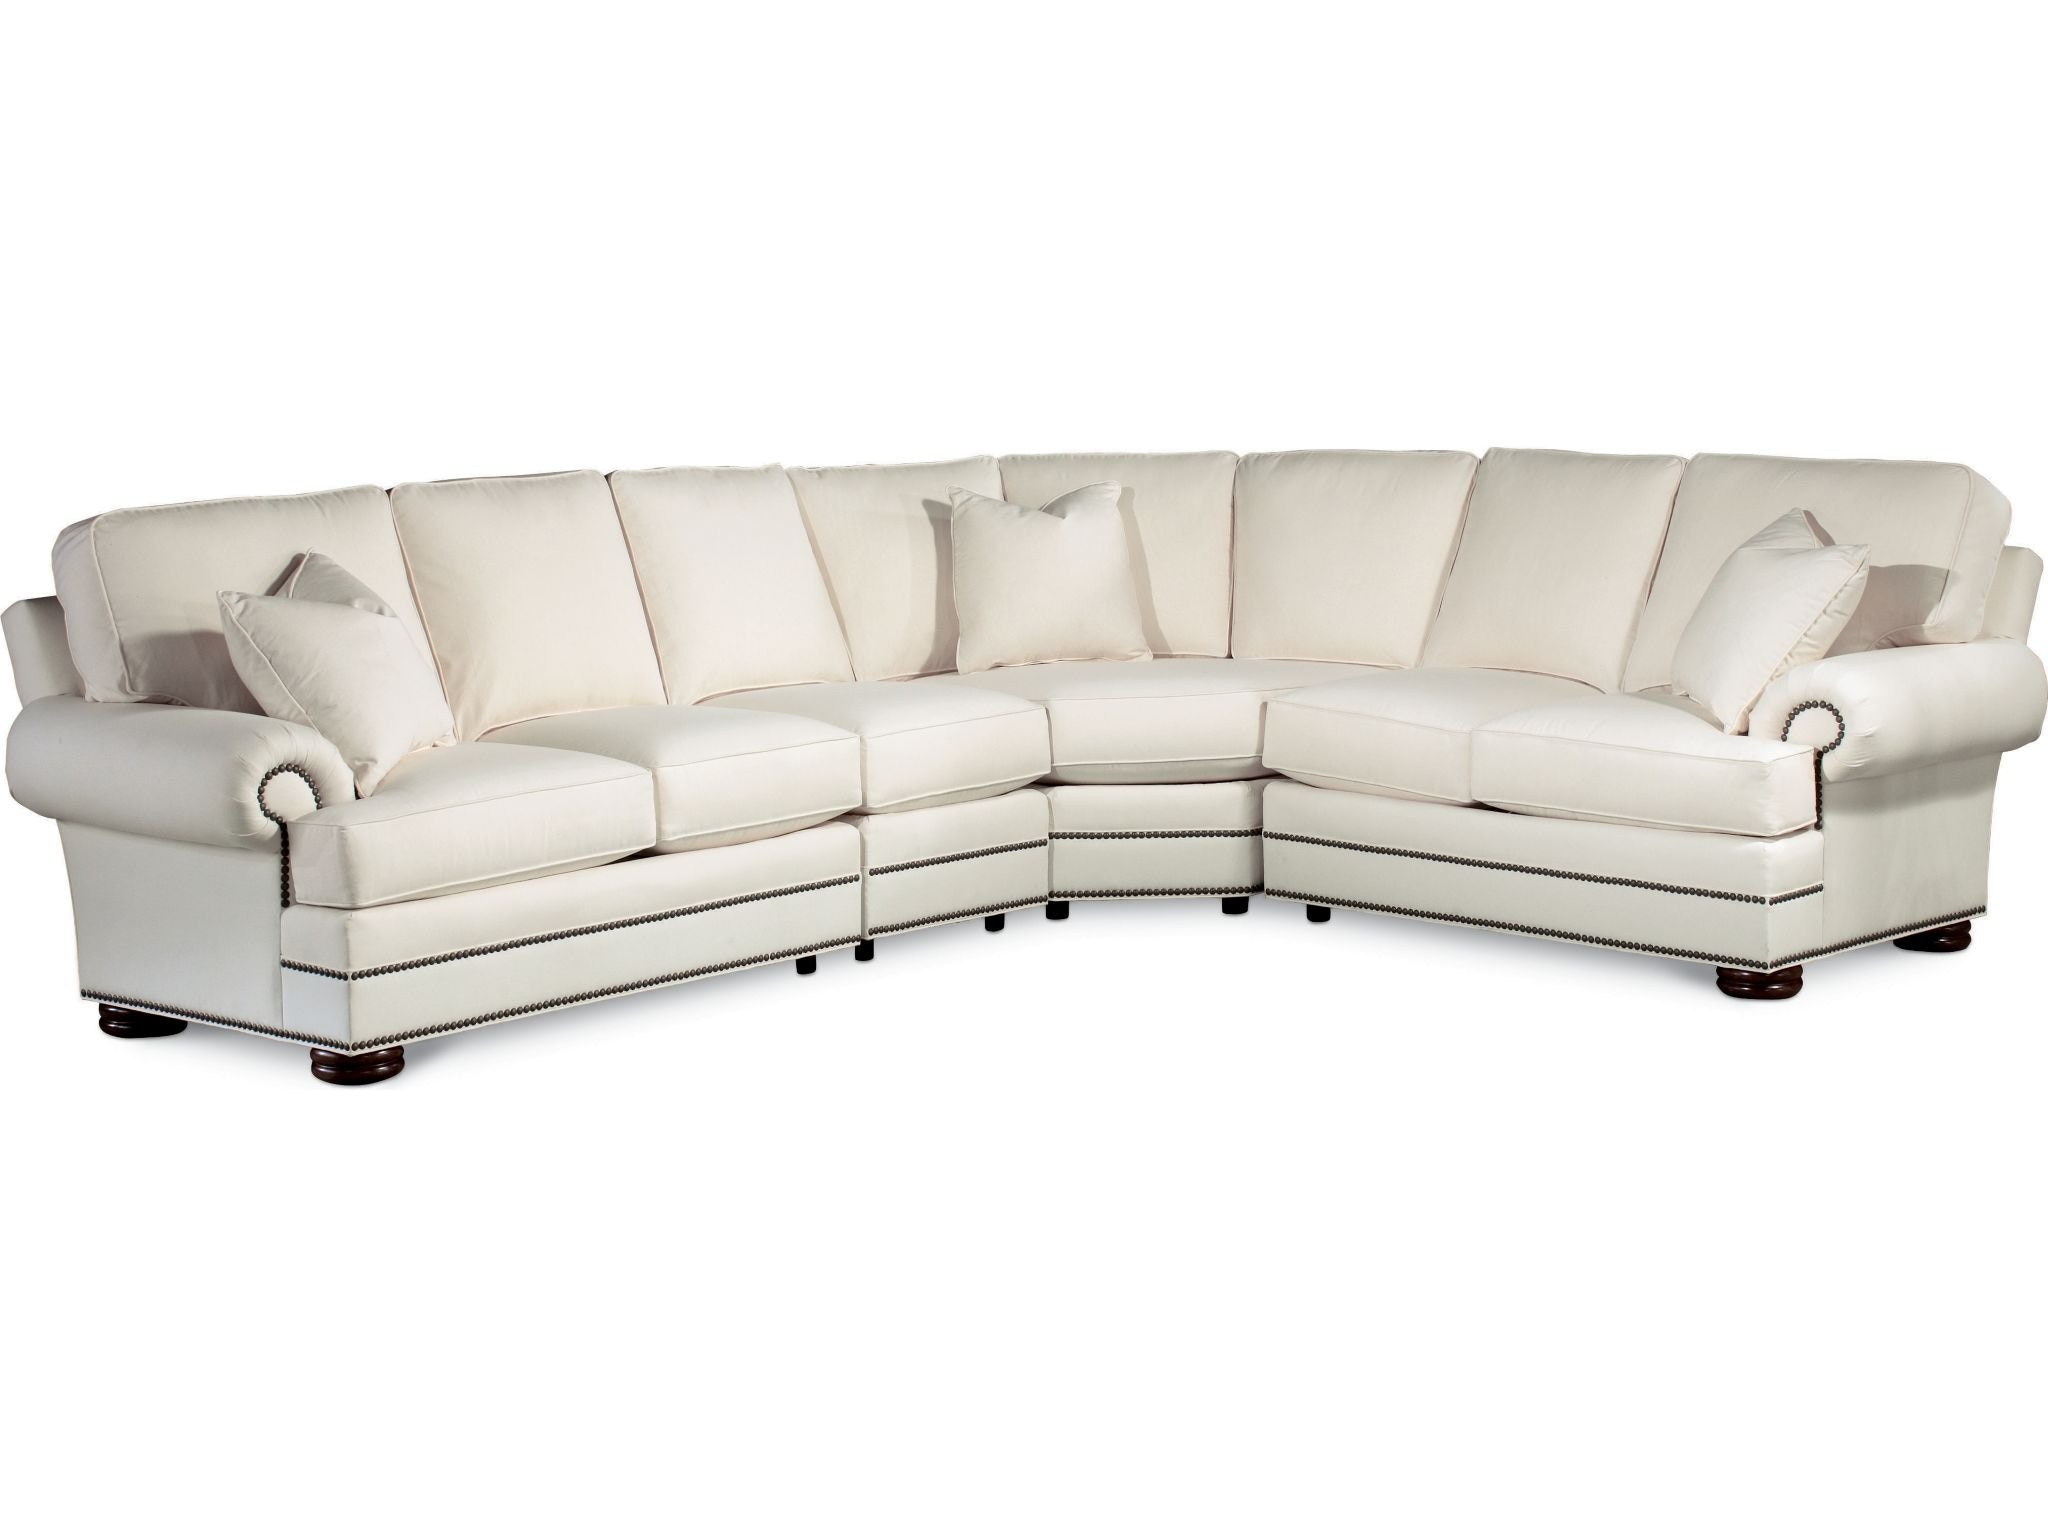 1459 SECT. Ashby Sectional